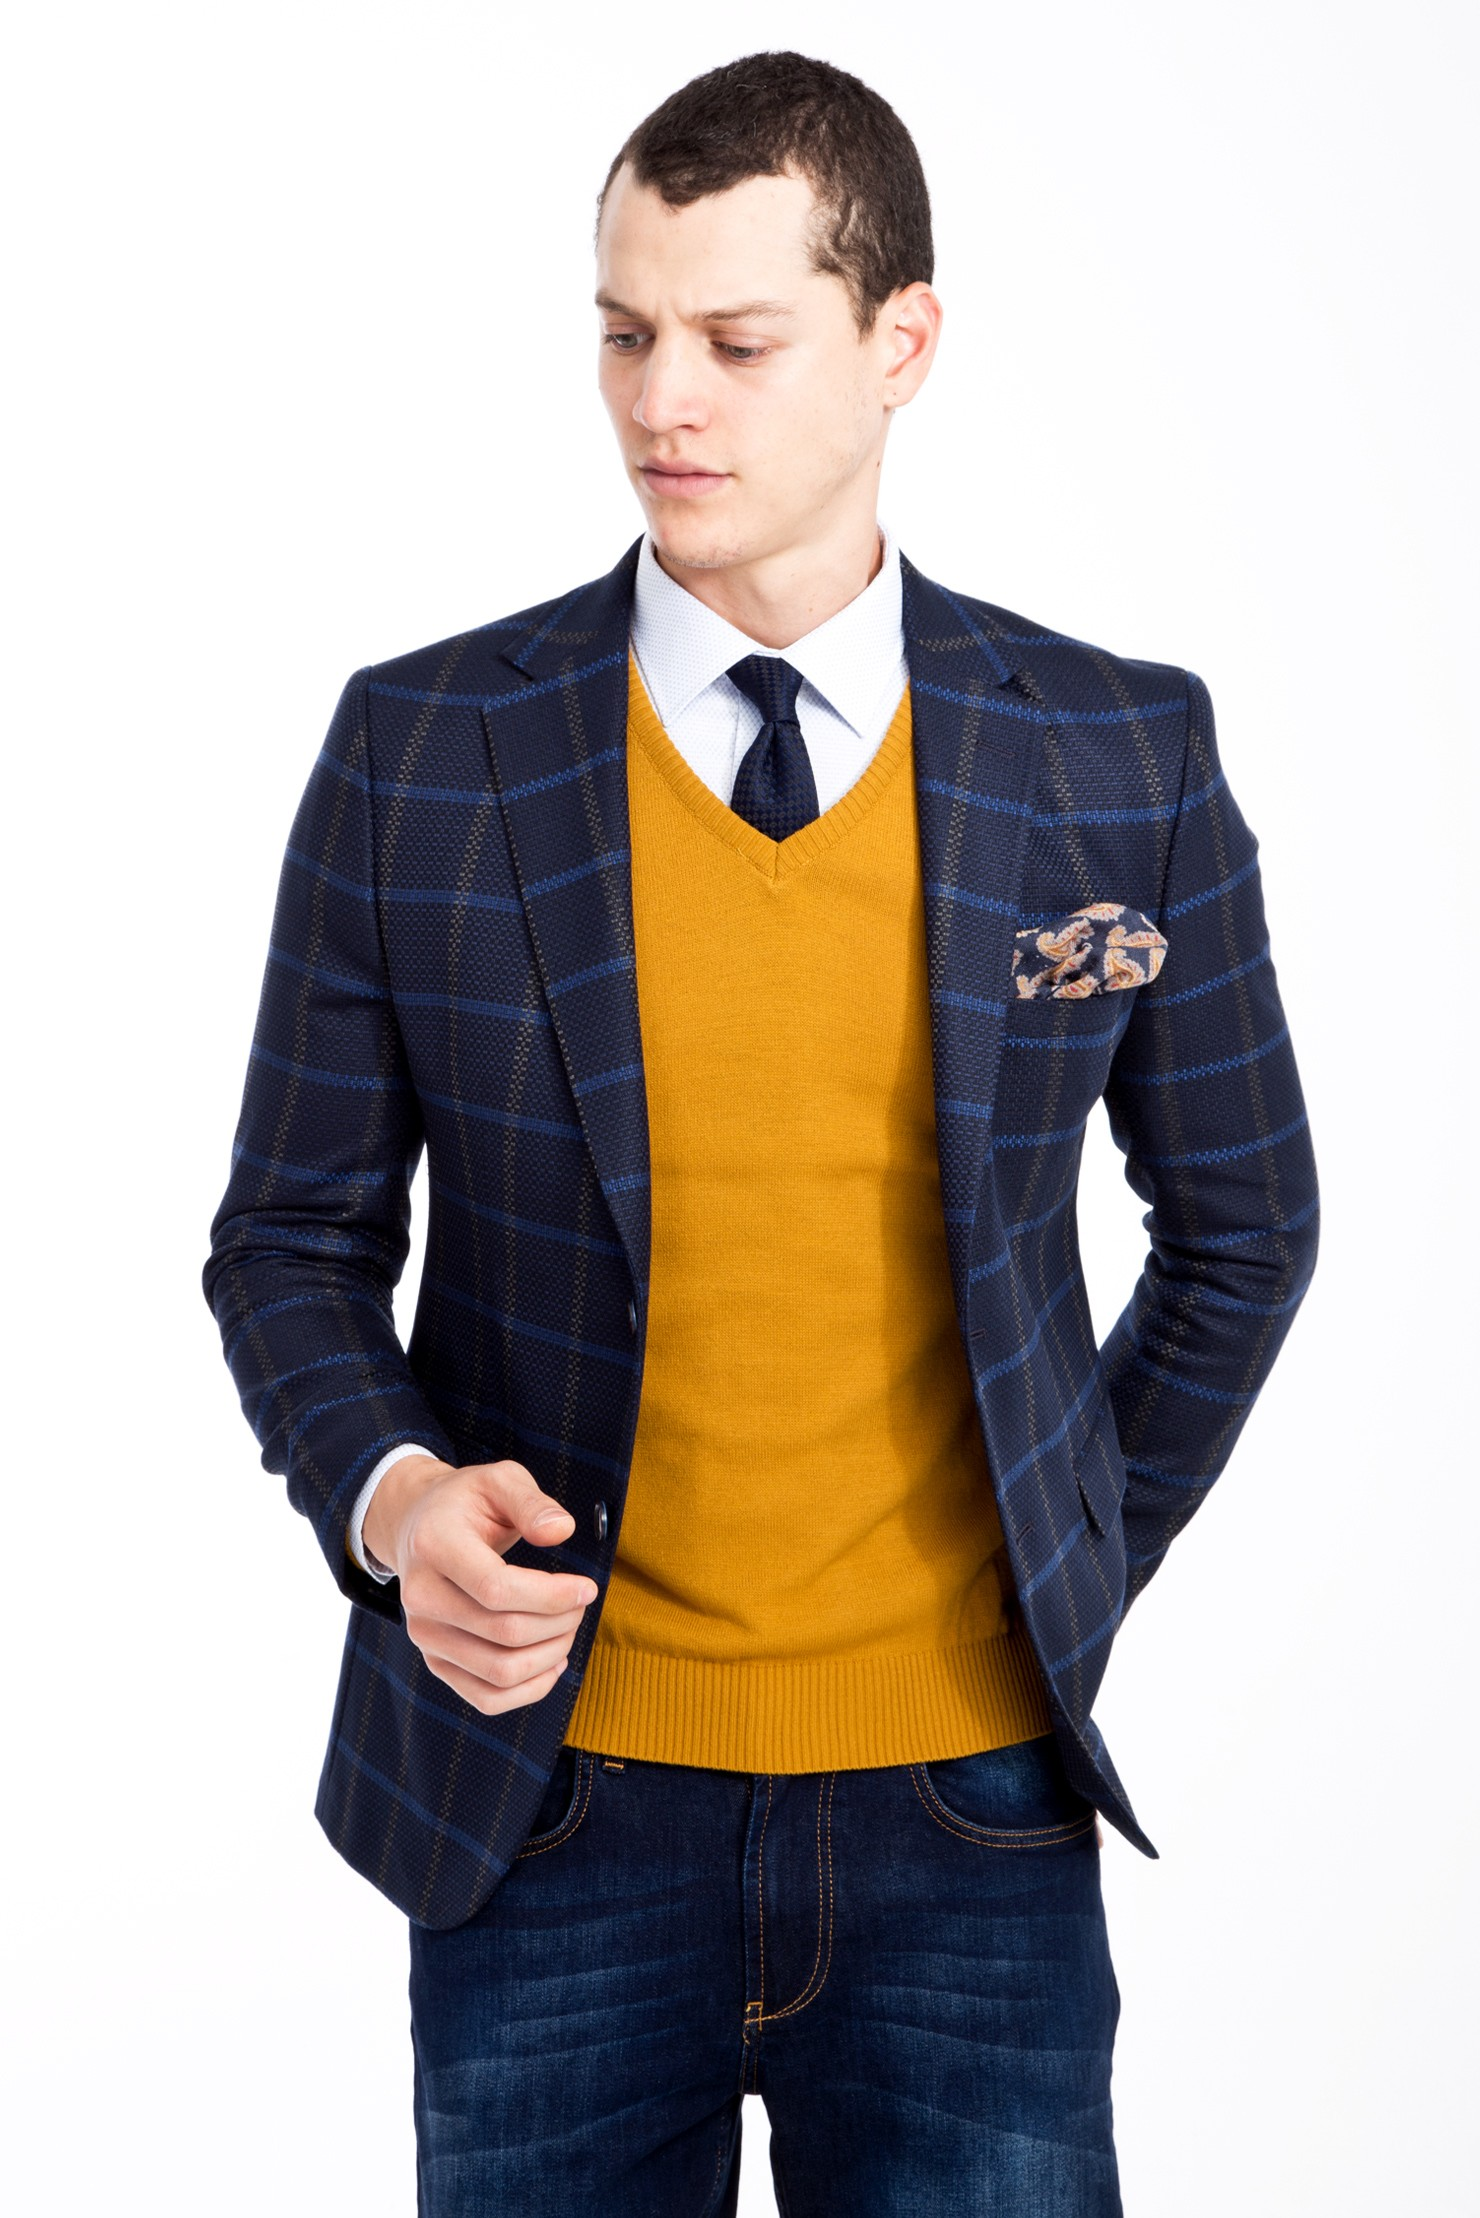 Kigili Slim Fit Casual 2 Button Single Breasted Plaid Blazer Easycare Polyester Check Patterned Made In Turkey Navy Blue